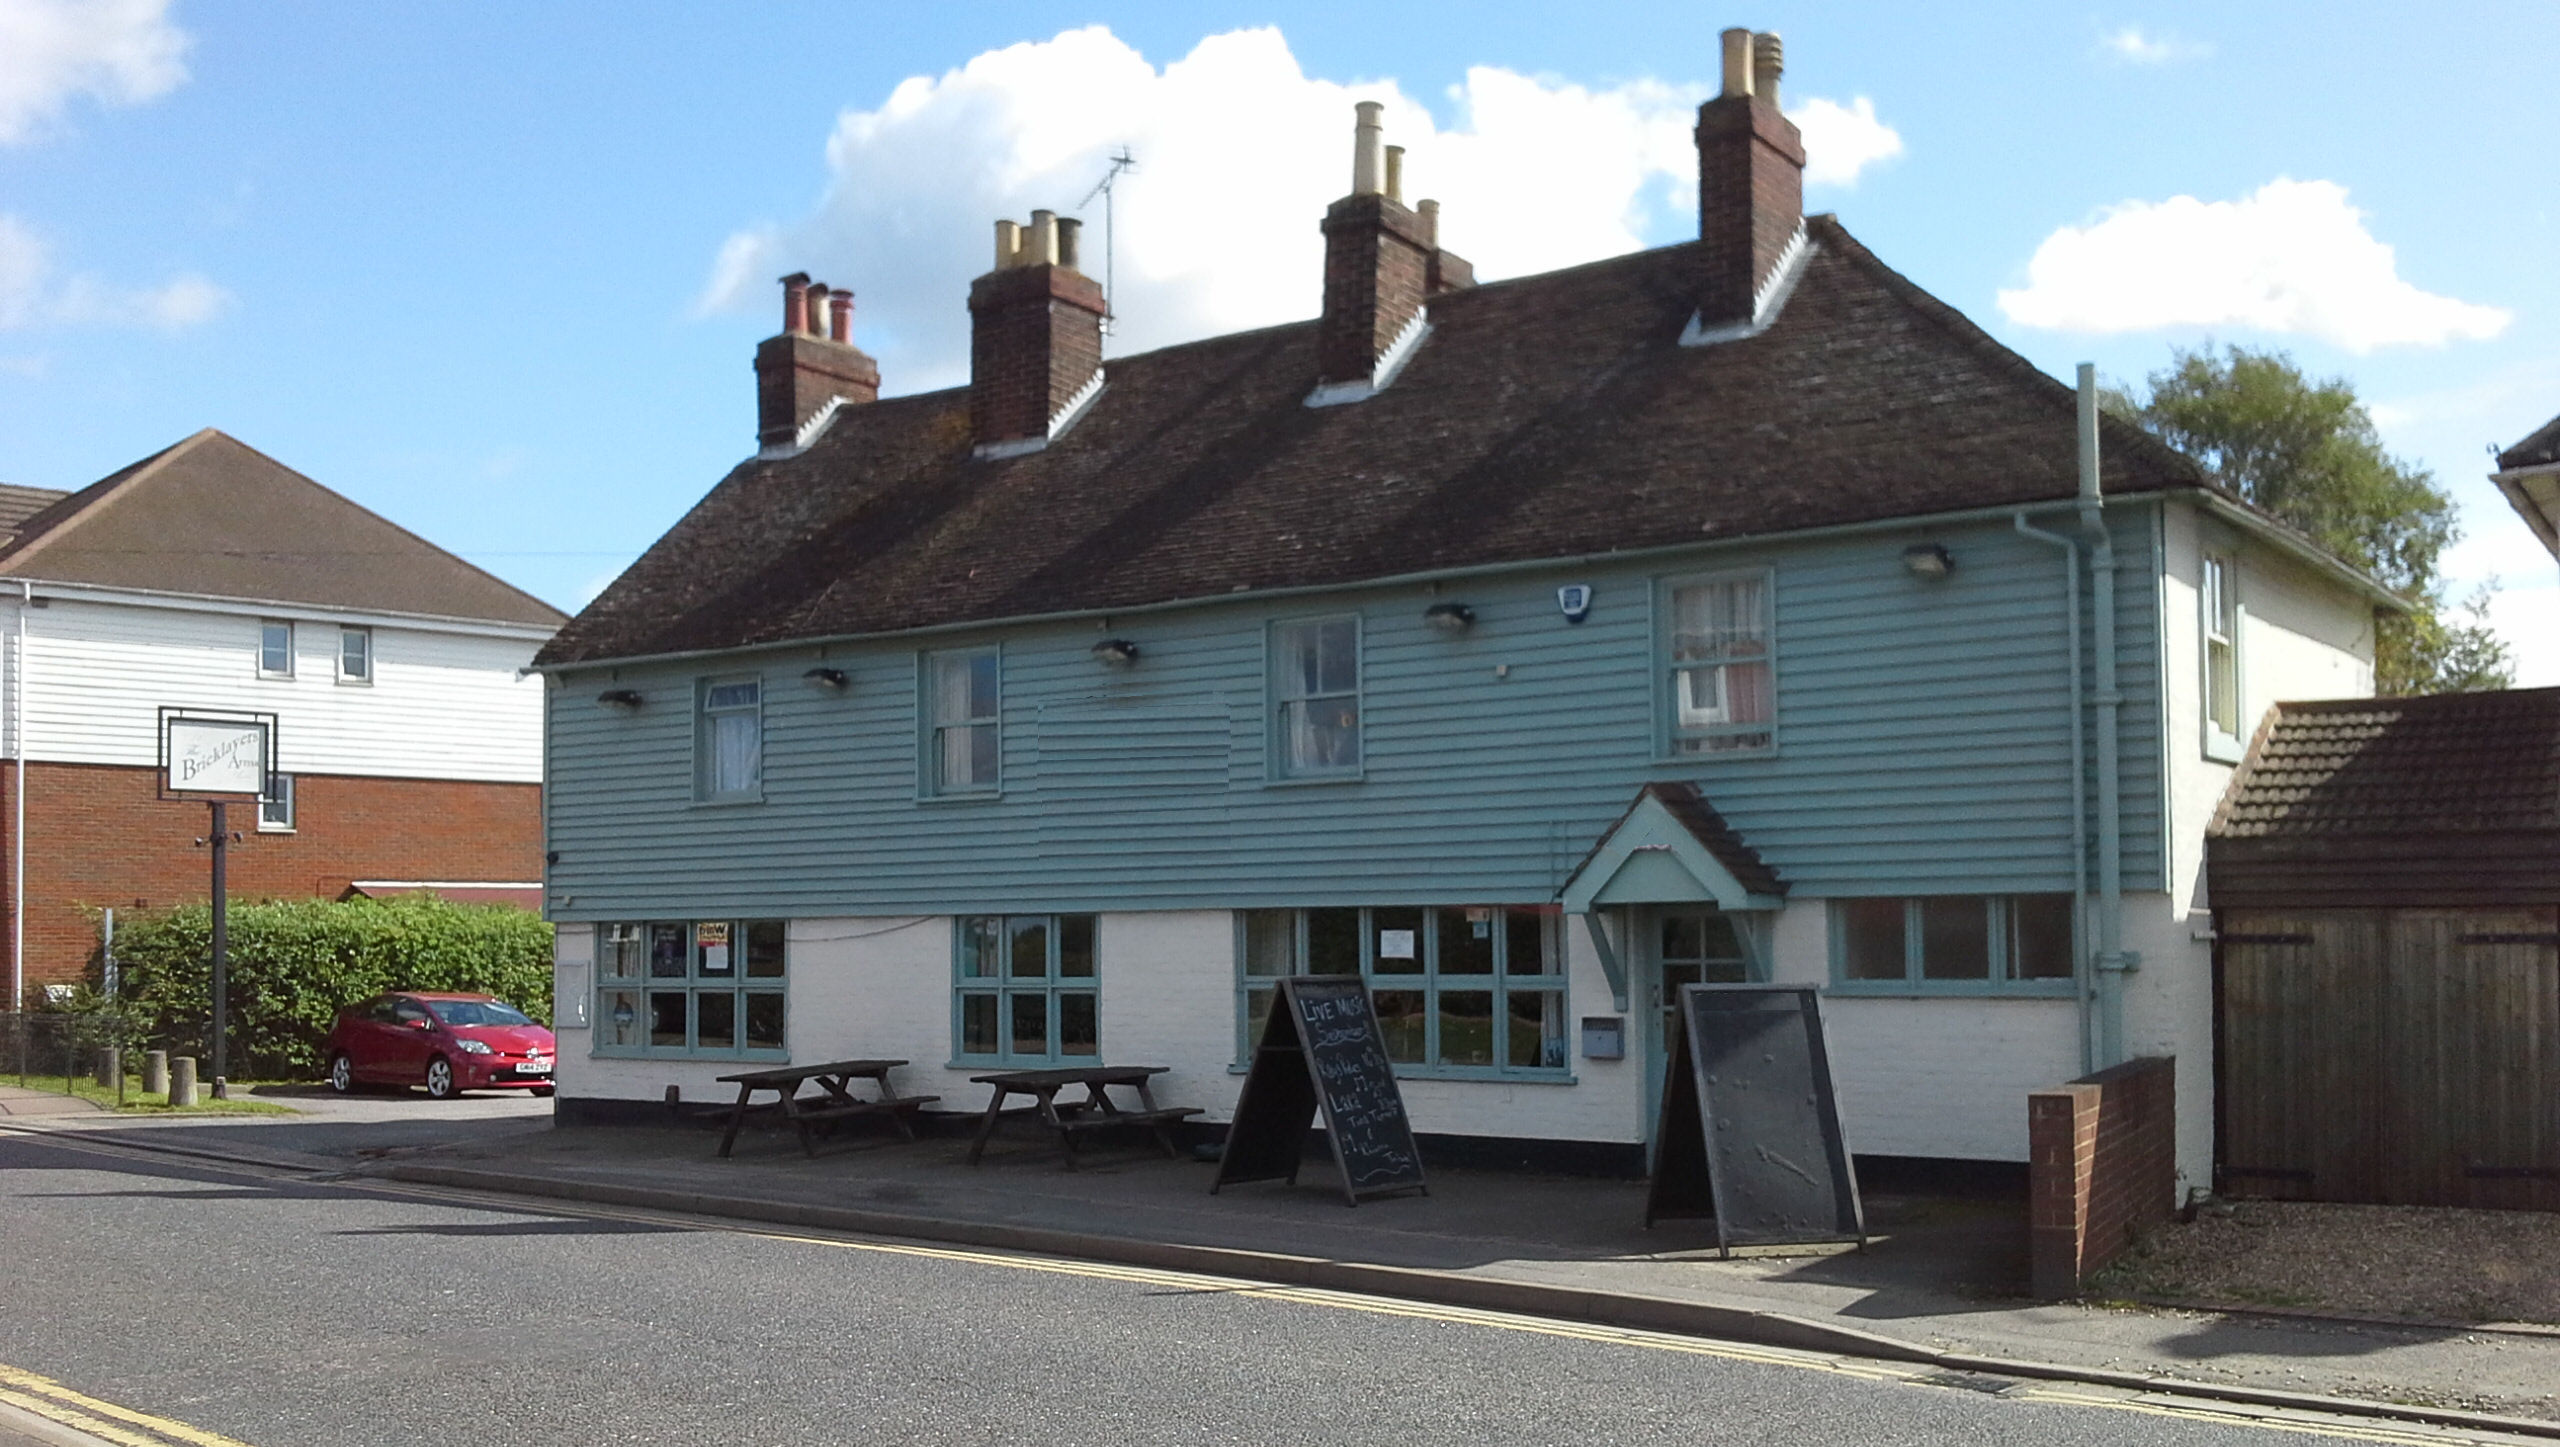 PUBLIC HOUSE WITH RESTAURANT AND ACCOMODATION, KENT